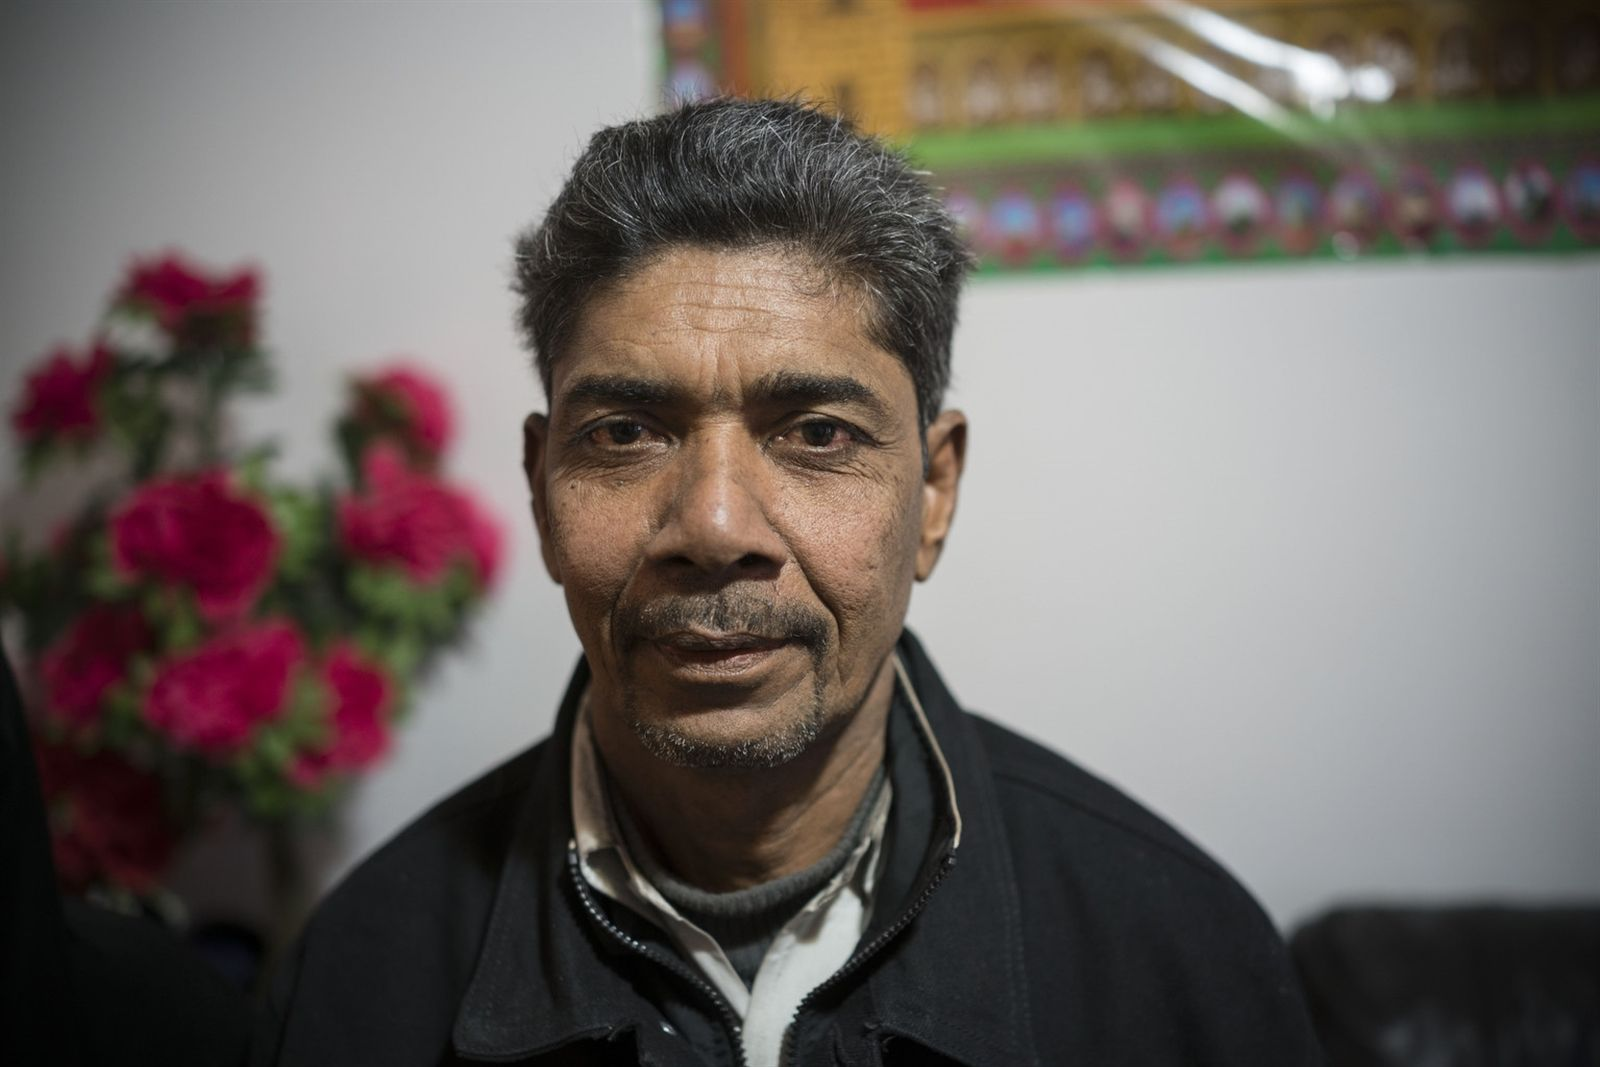 """""""It is a helpless feeling,"""" said Shamsul Alam of what it's like to get reports of recent horrors in his homeland."""